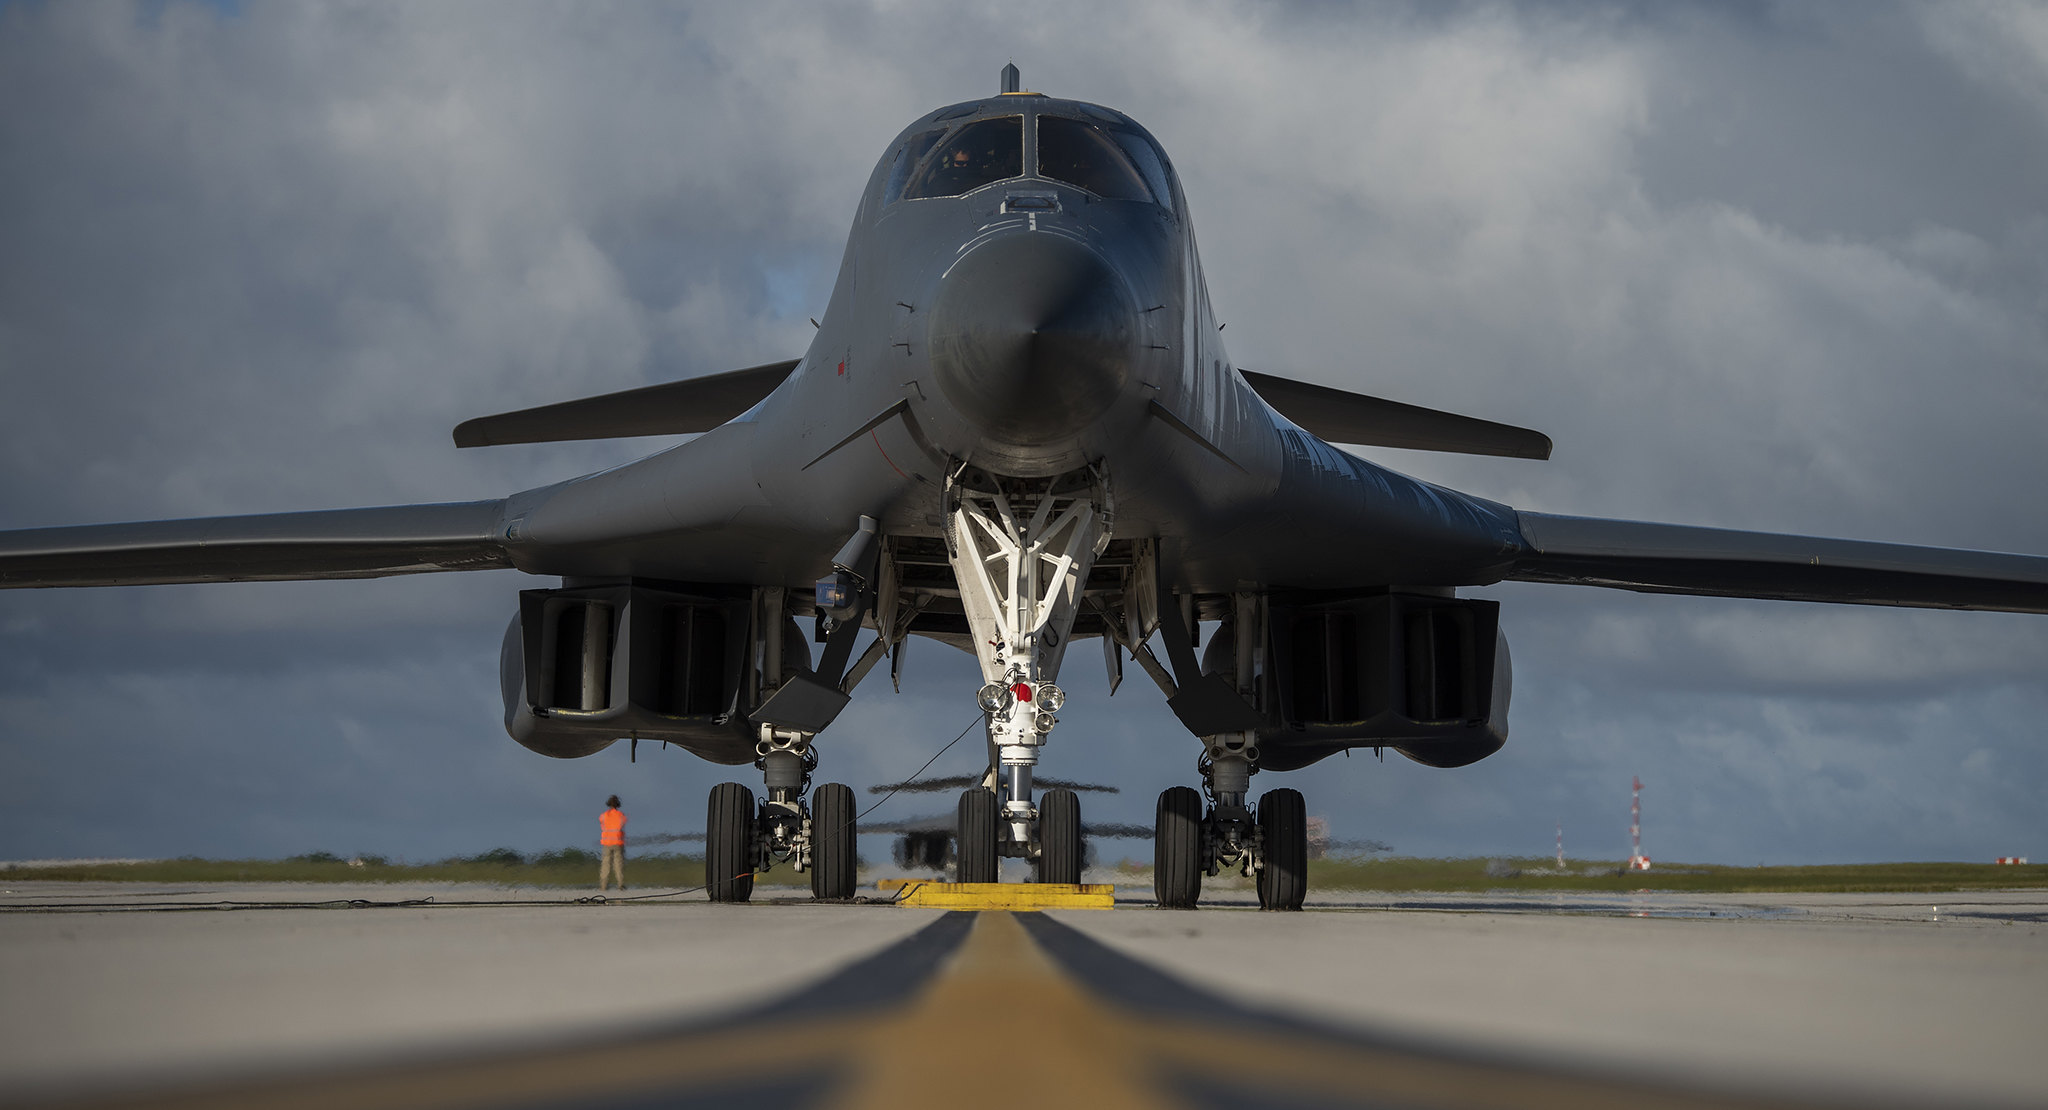 A 9th Expeditionary Bomb Squadron B-1B Lancer waits to park at Andersen Air Force Base, Guam, May 14, 2020, after completing a training mission in the East China Sea. (Senior Airman River Bruce/Air Force)